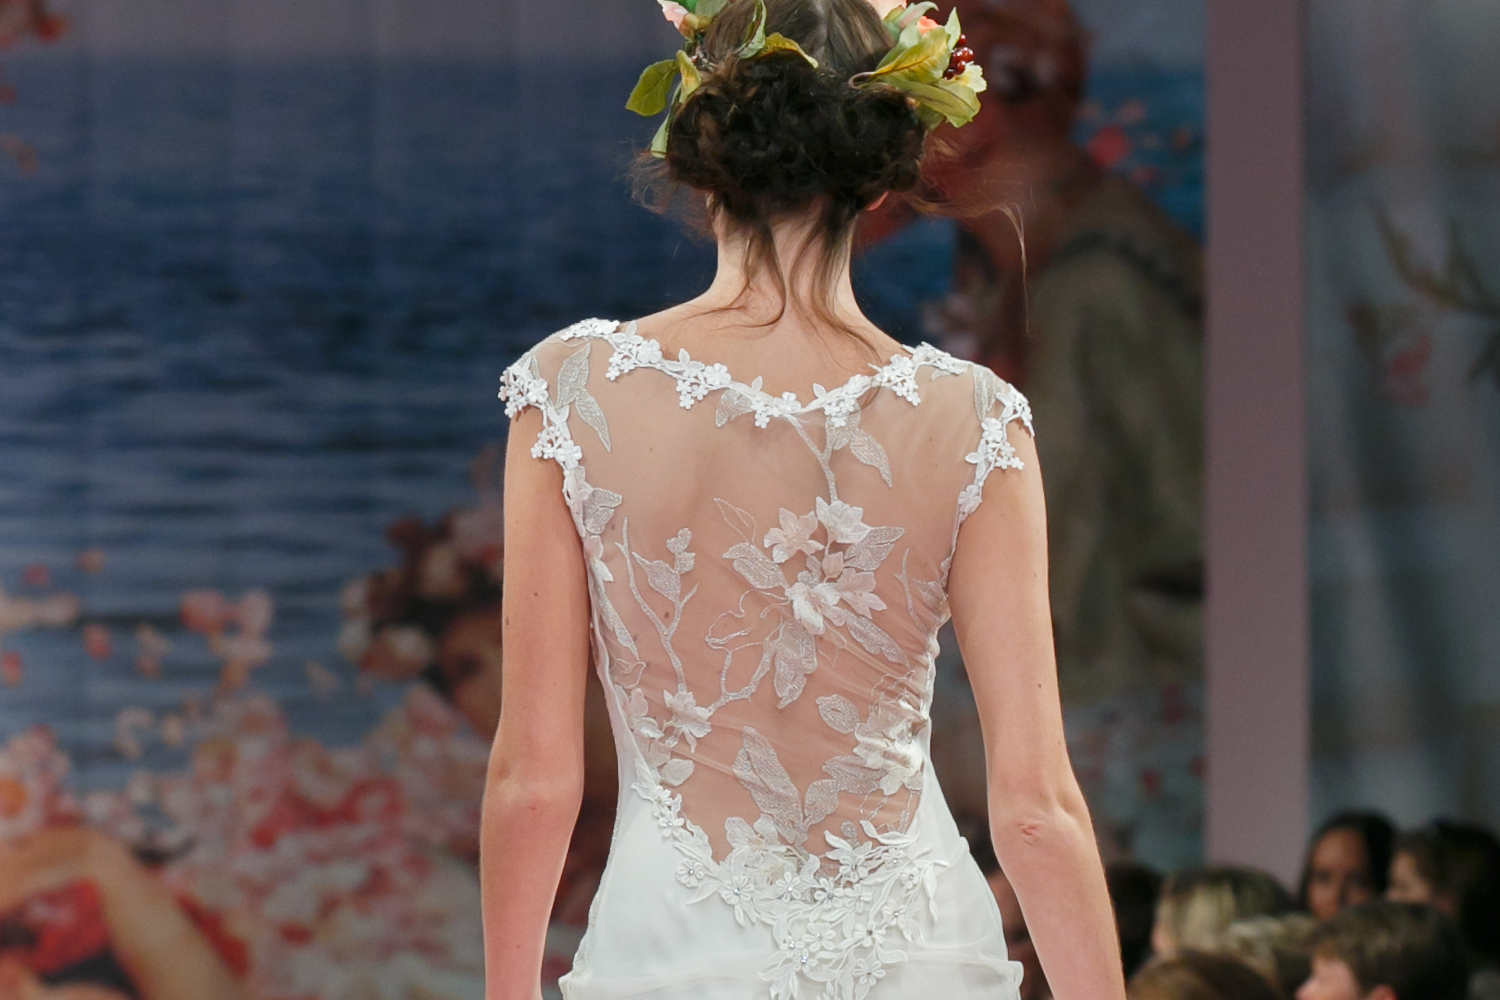 Romantic-brides-runway-inspiration-claire-pettibone-statement-backs-3.original